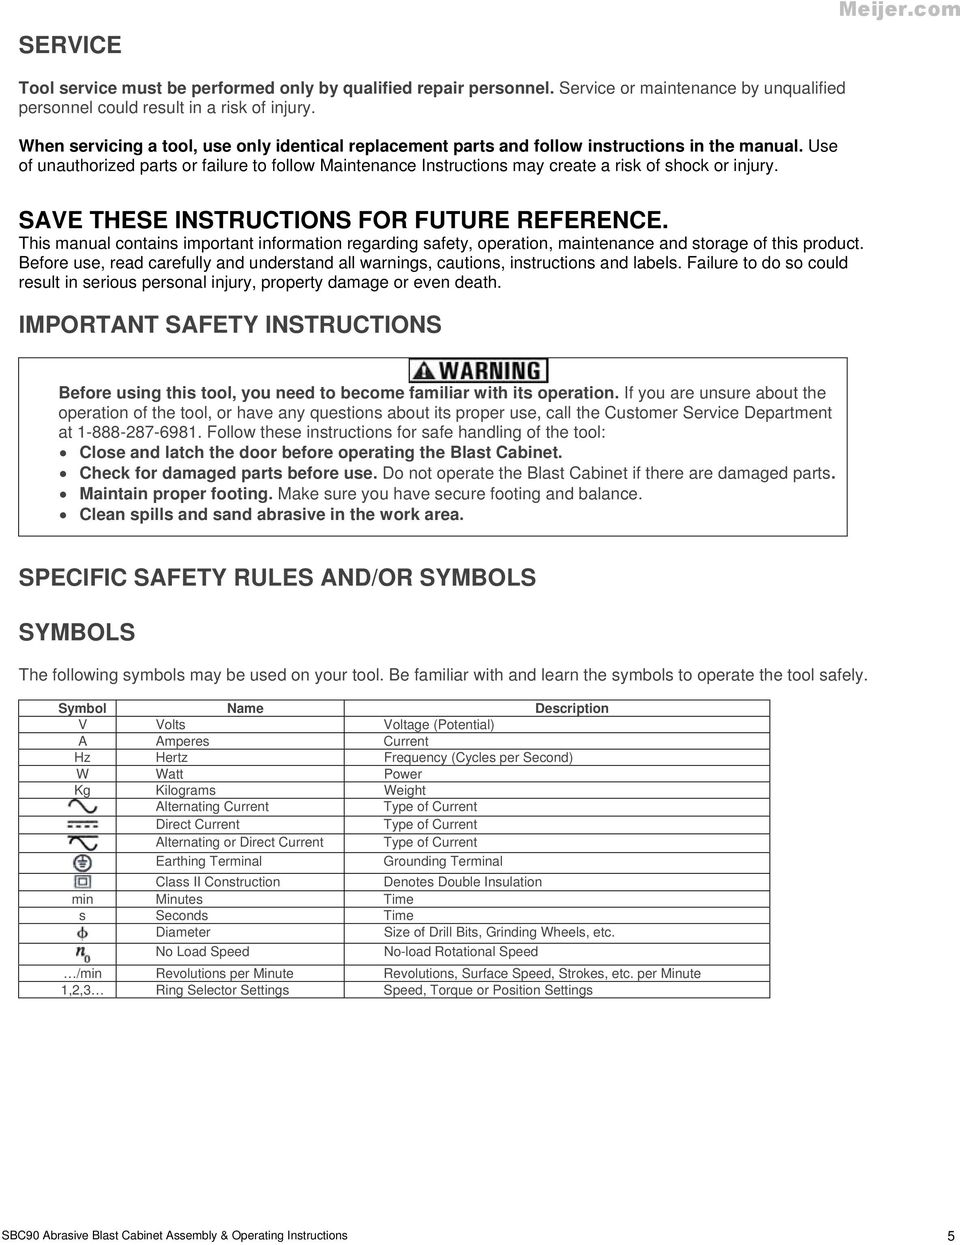 Use of unauthorized parts or failure to follow Maintenance Instructions may create a risk of shock or injury. SAVE THESE INSTRUCTIONS FOR FUTURE REFERENCE.